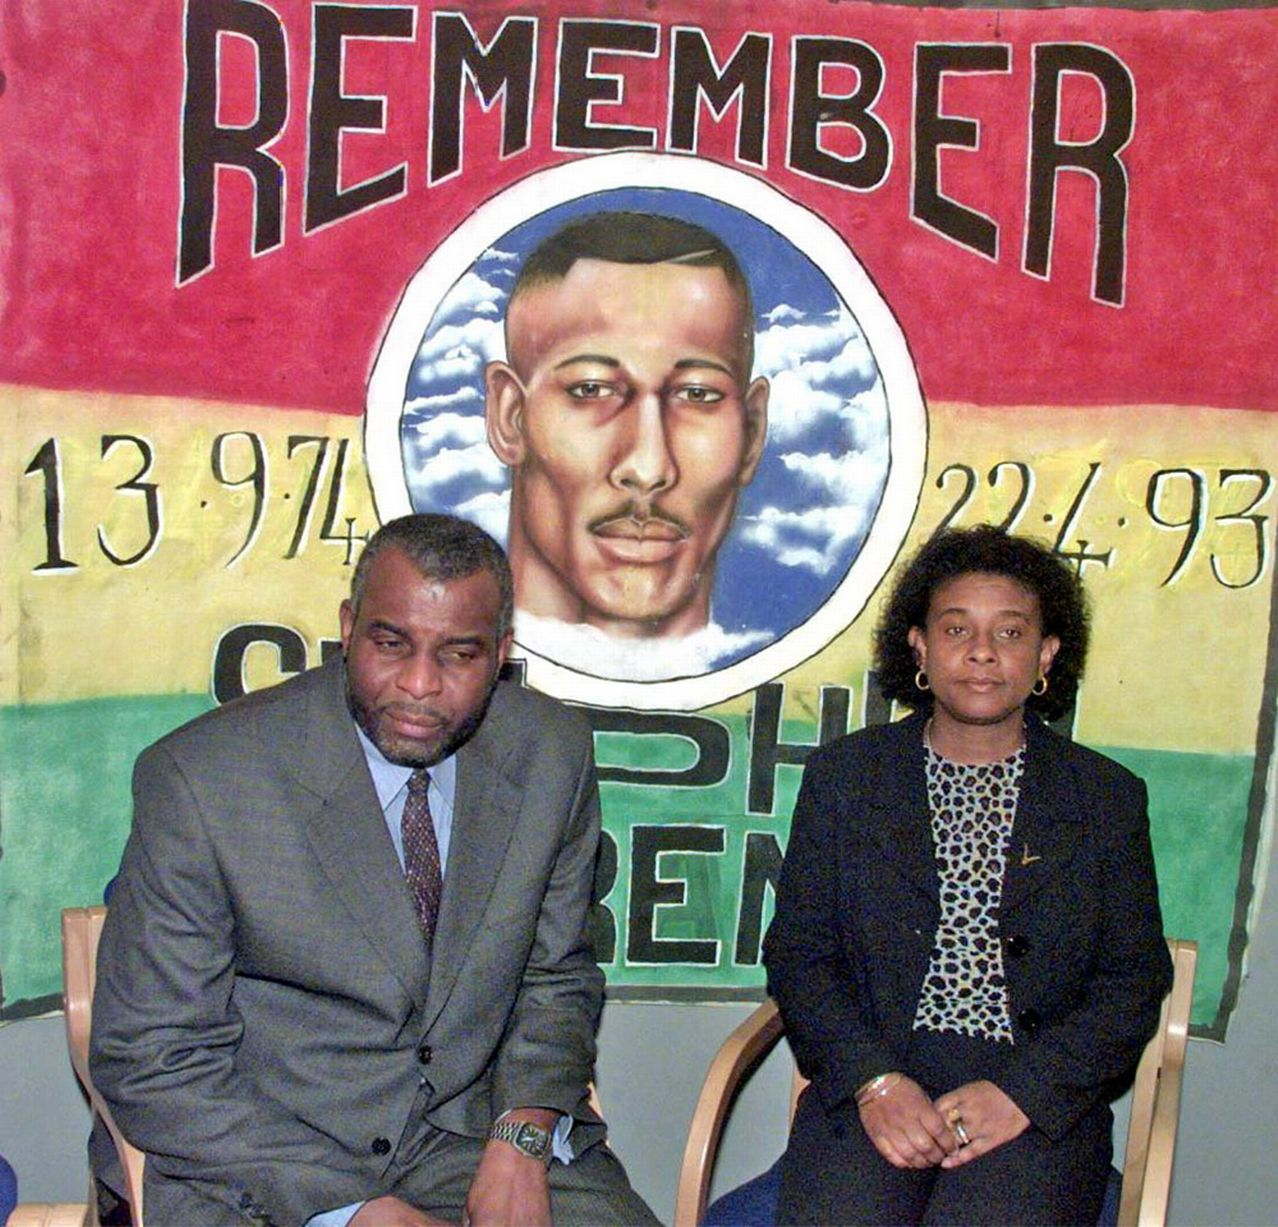 A report of the murder of stephen lawrence